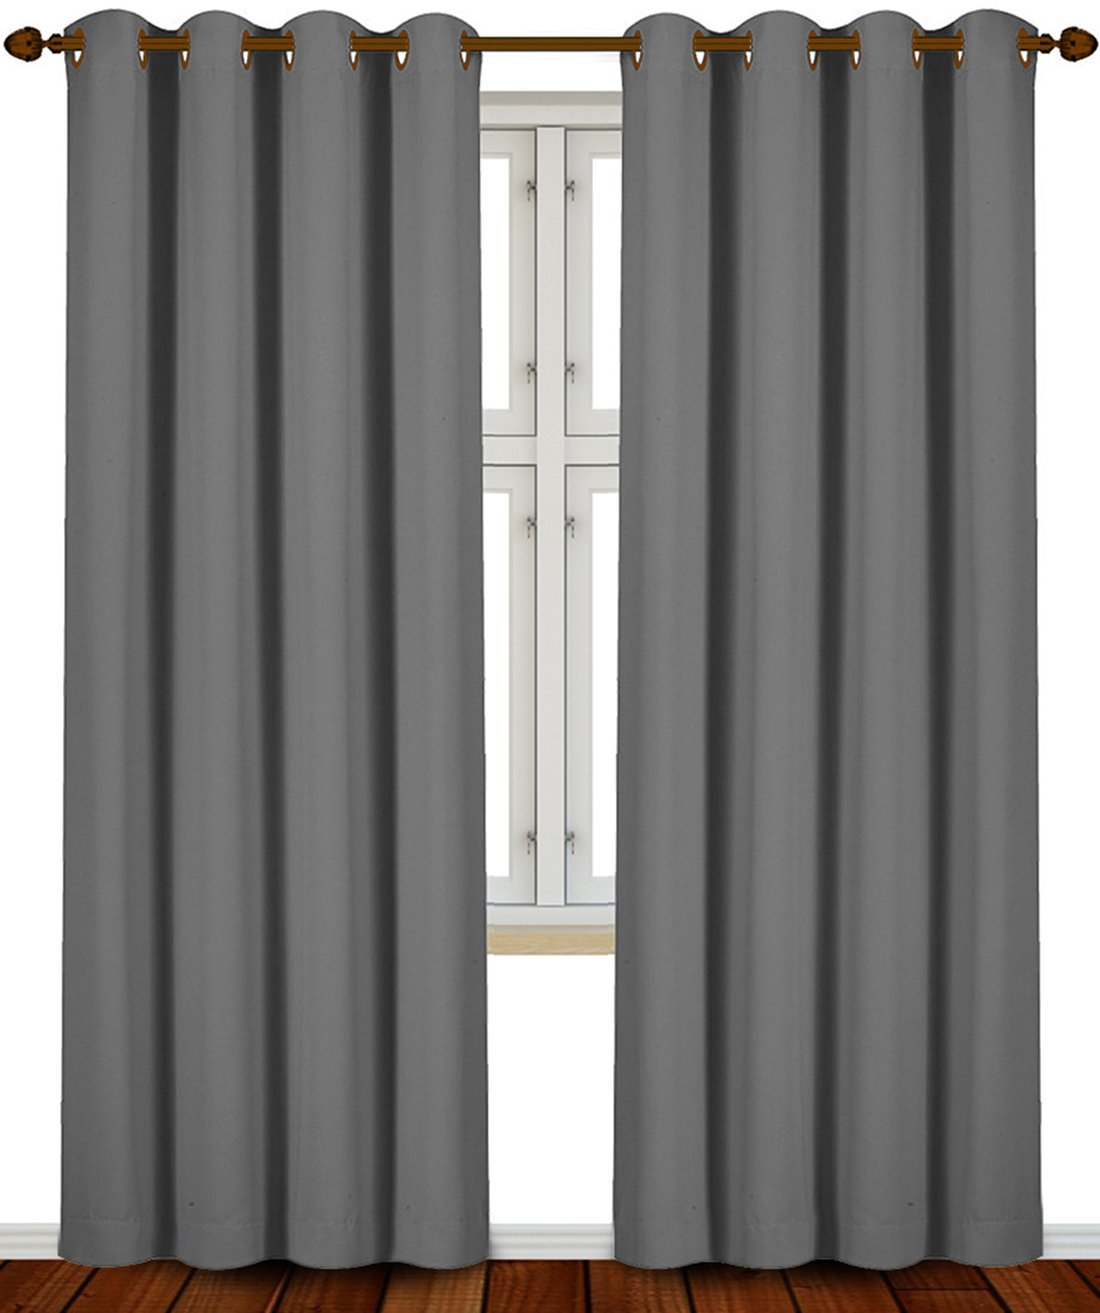 Blackout Room Darkening Curtains Window Panel Drapes Grey Color